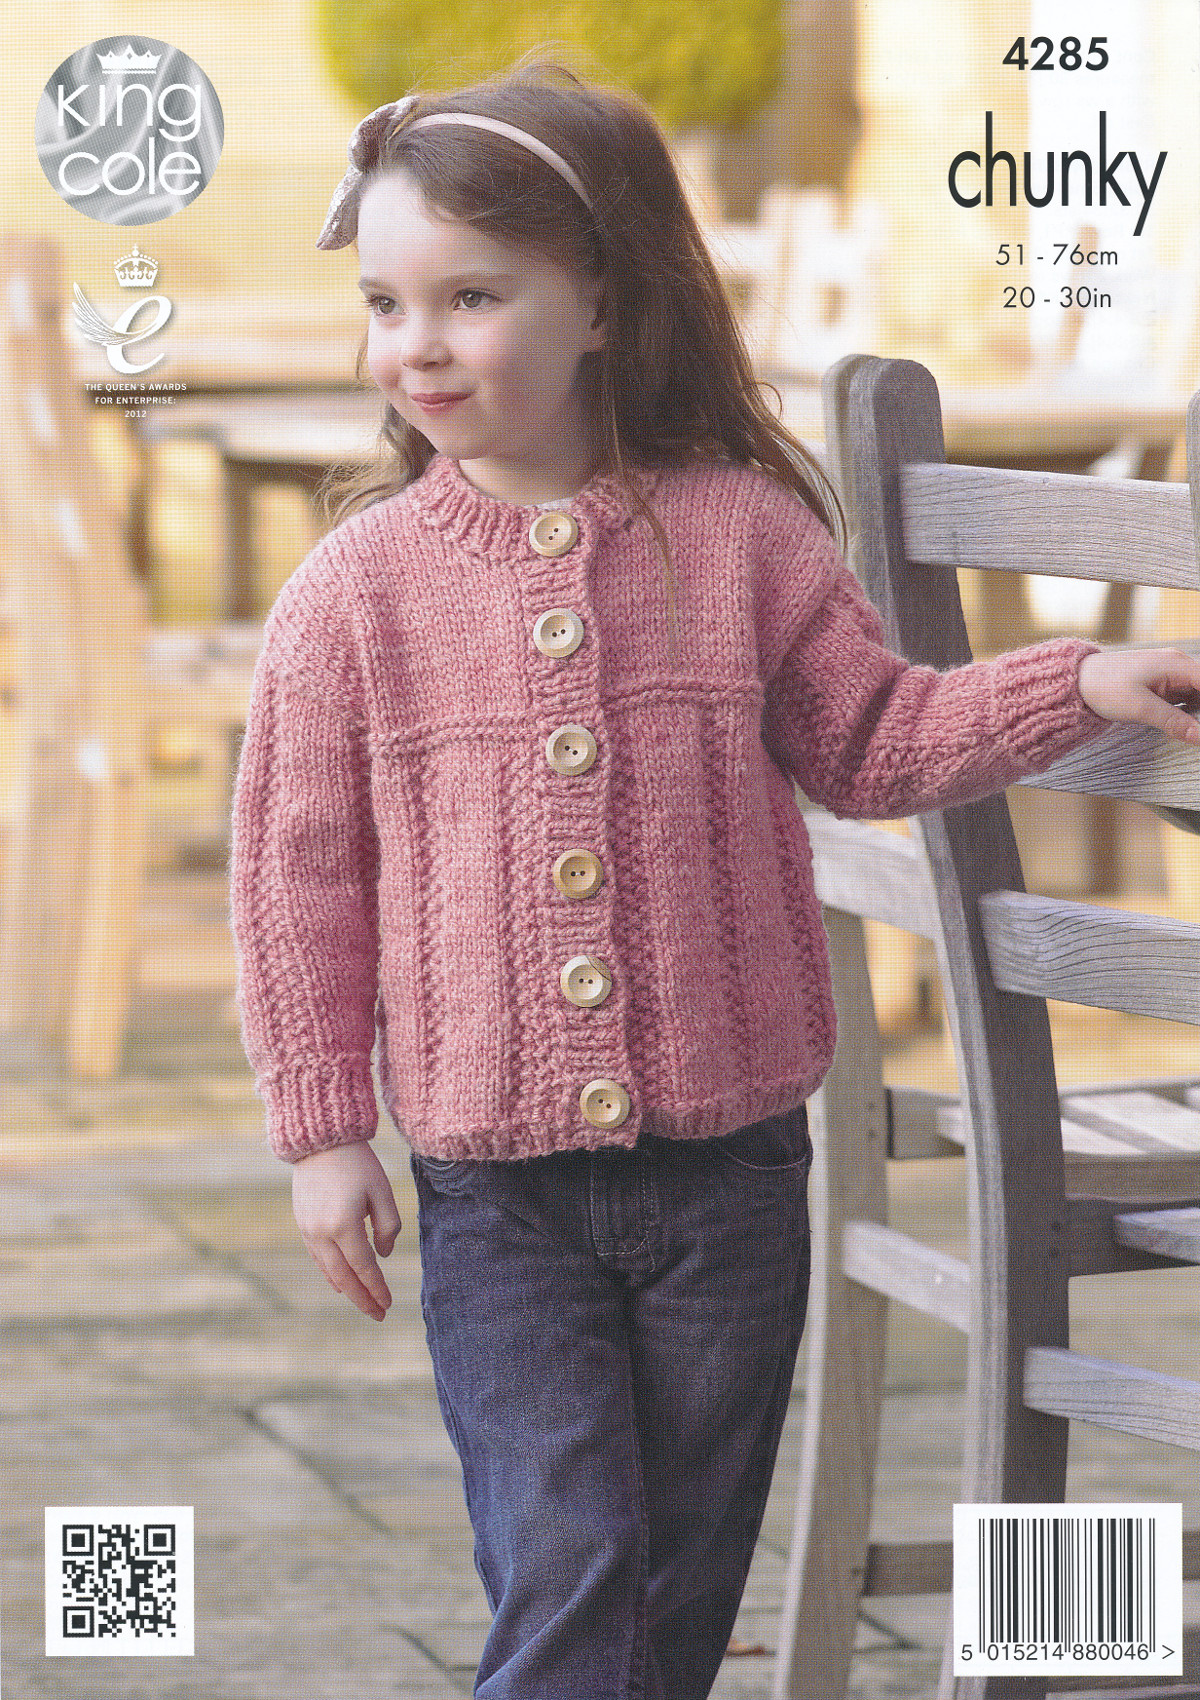 Knitting Patterns Childrens Jumpers : Kids Chunky Knitting Pattern King Cole Childrens Sweater Jumper Cardigan 4285...